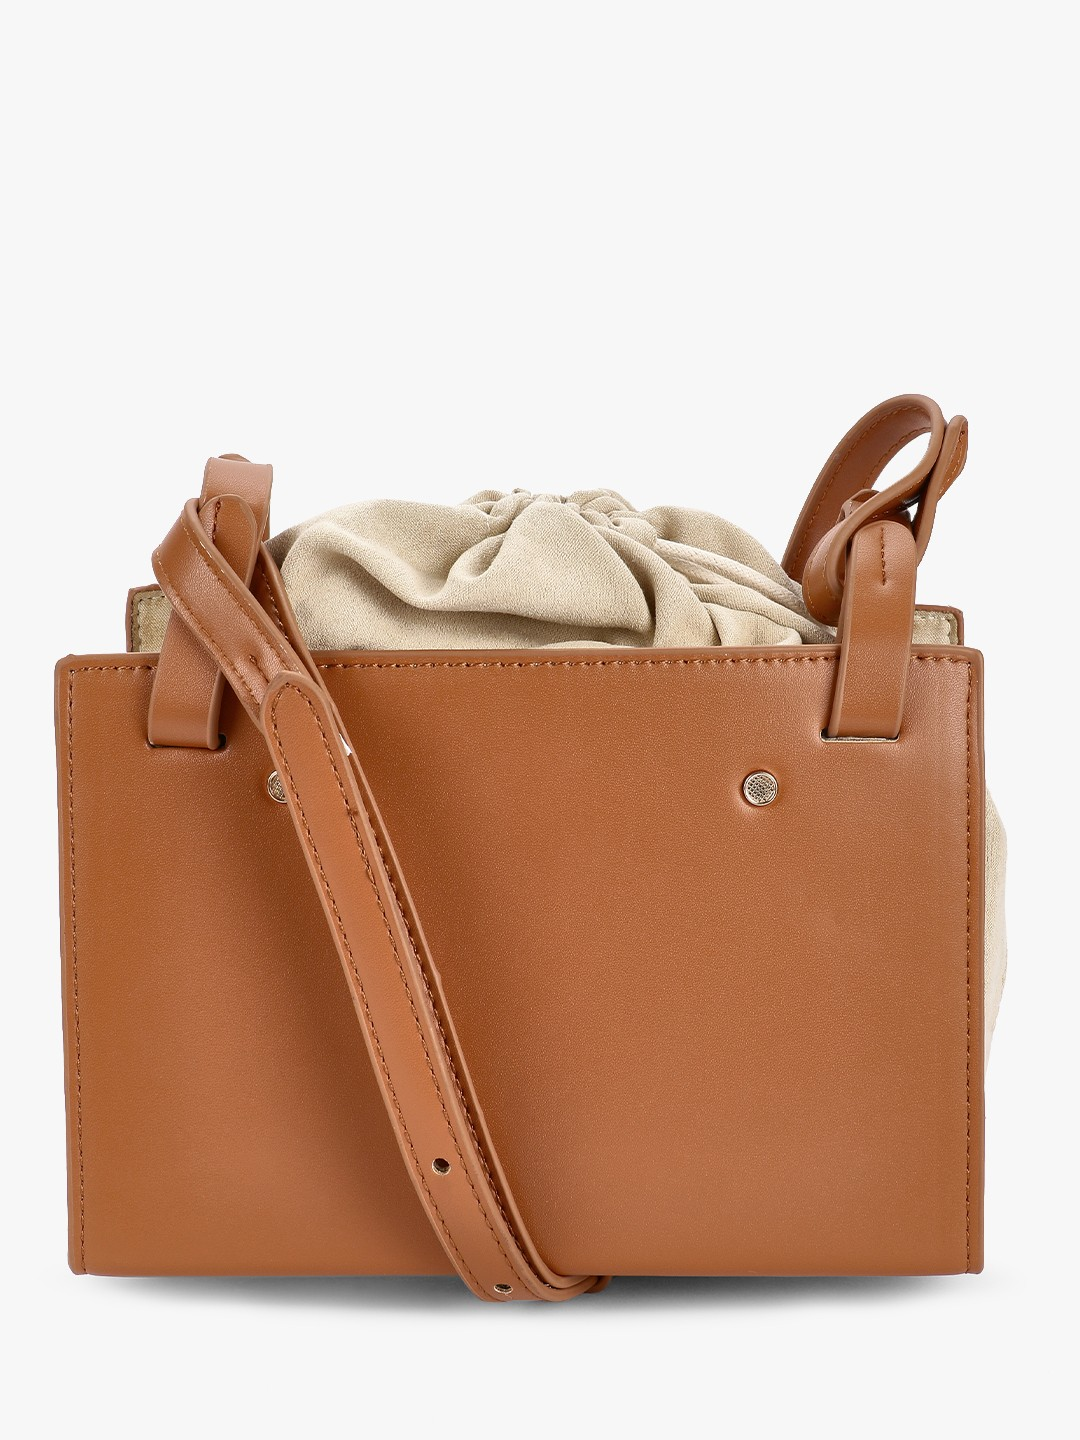 Origami Lily Tan Inside Pouch Sling Bag 1